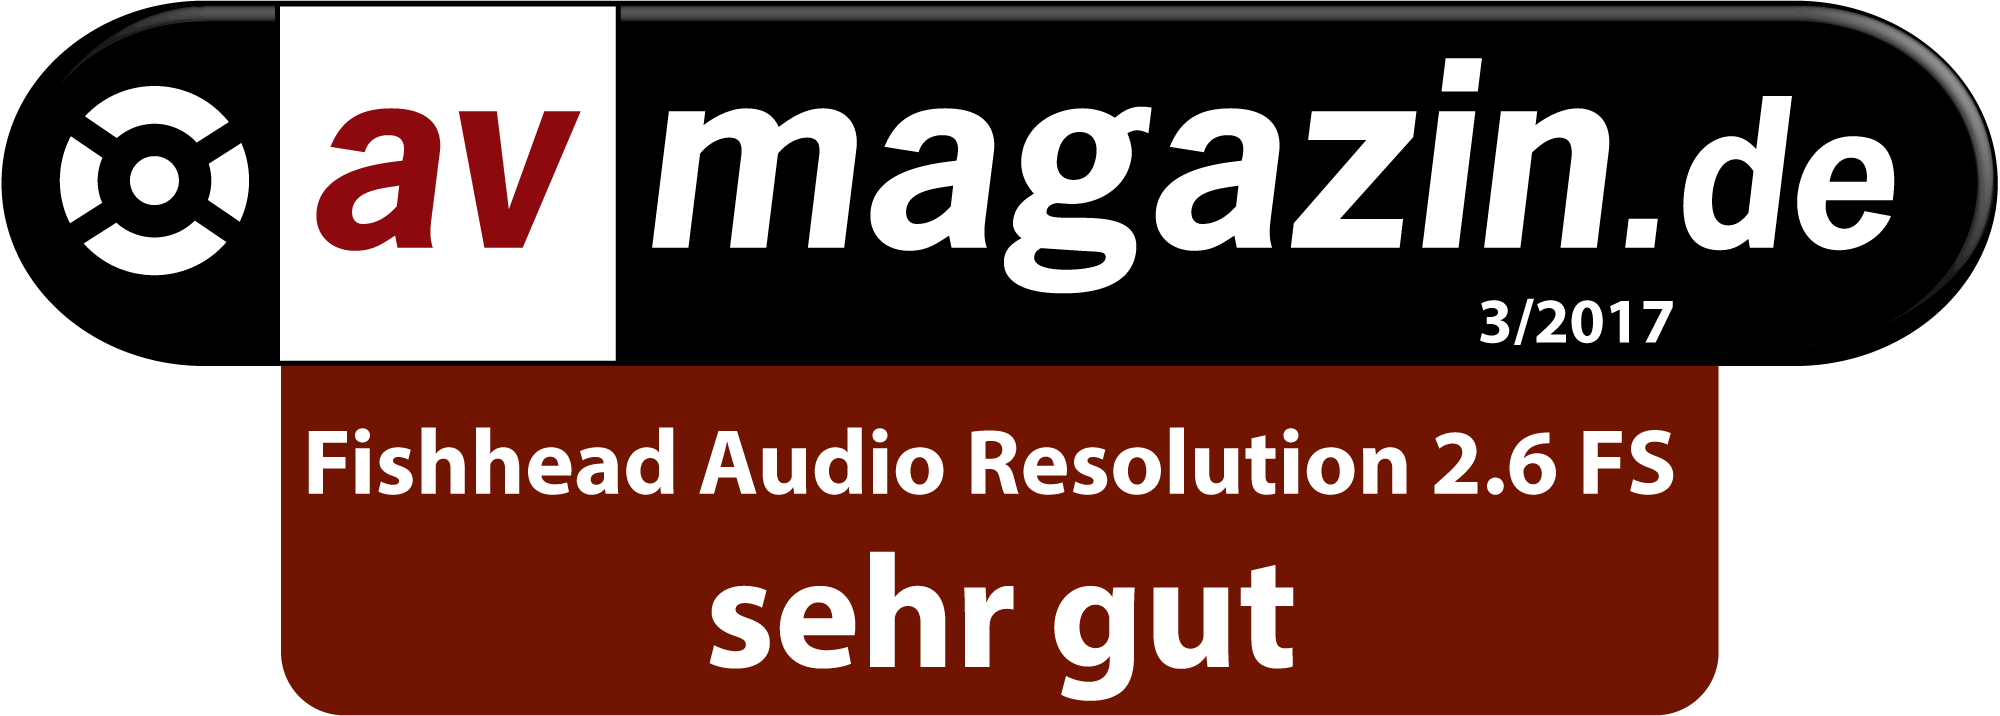 Fishhead Audio Resolution 2.6 FS Lautsprecher im Test: AV Magazin - sehr gut